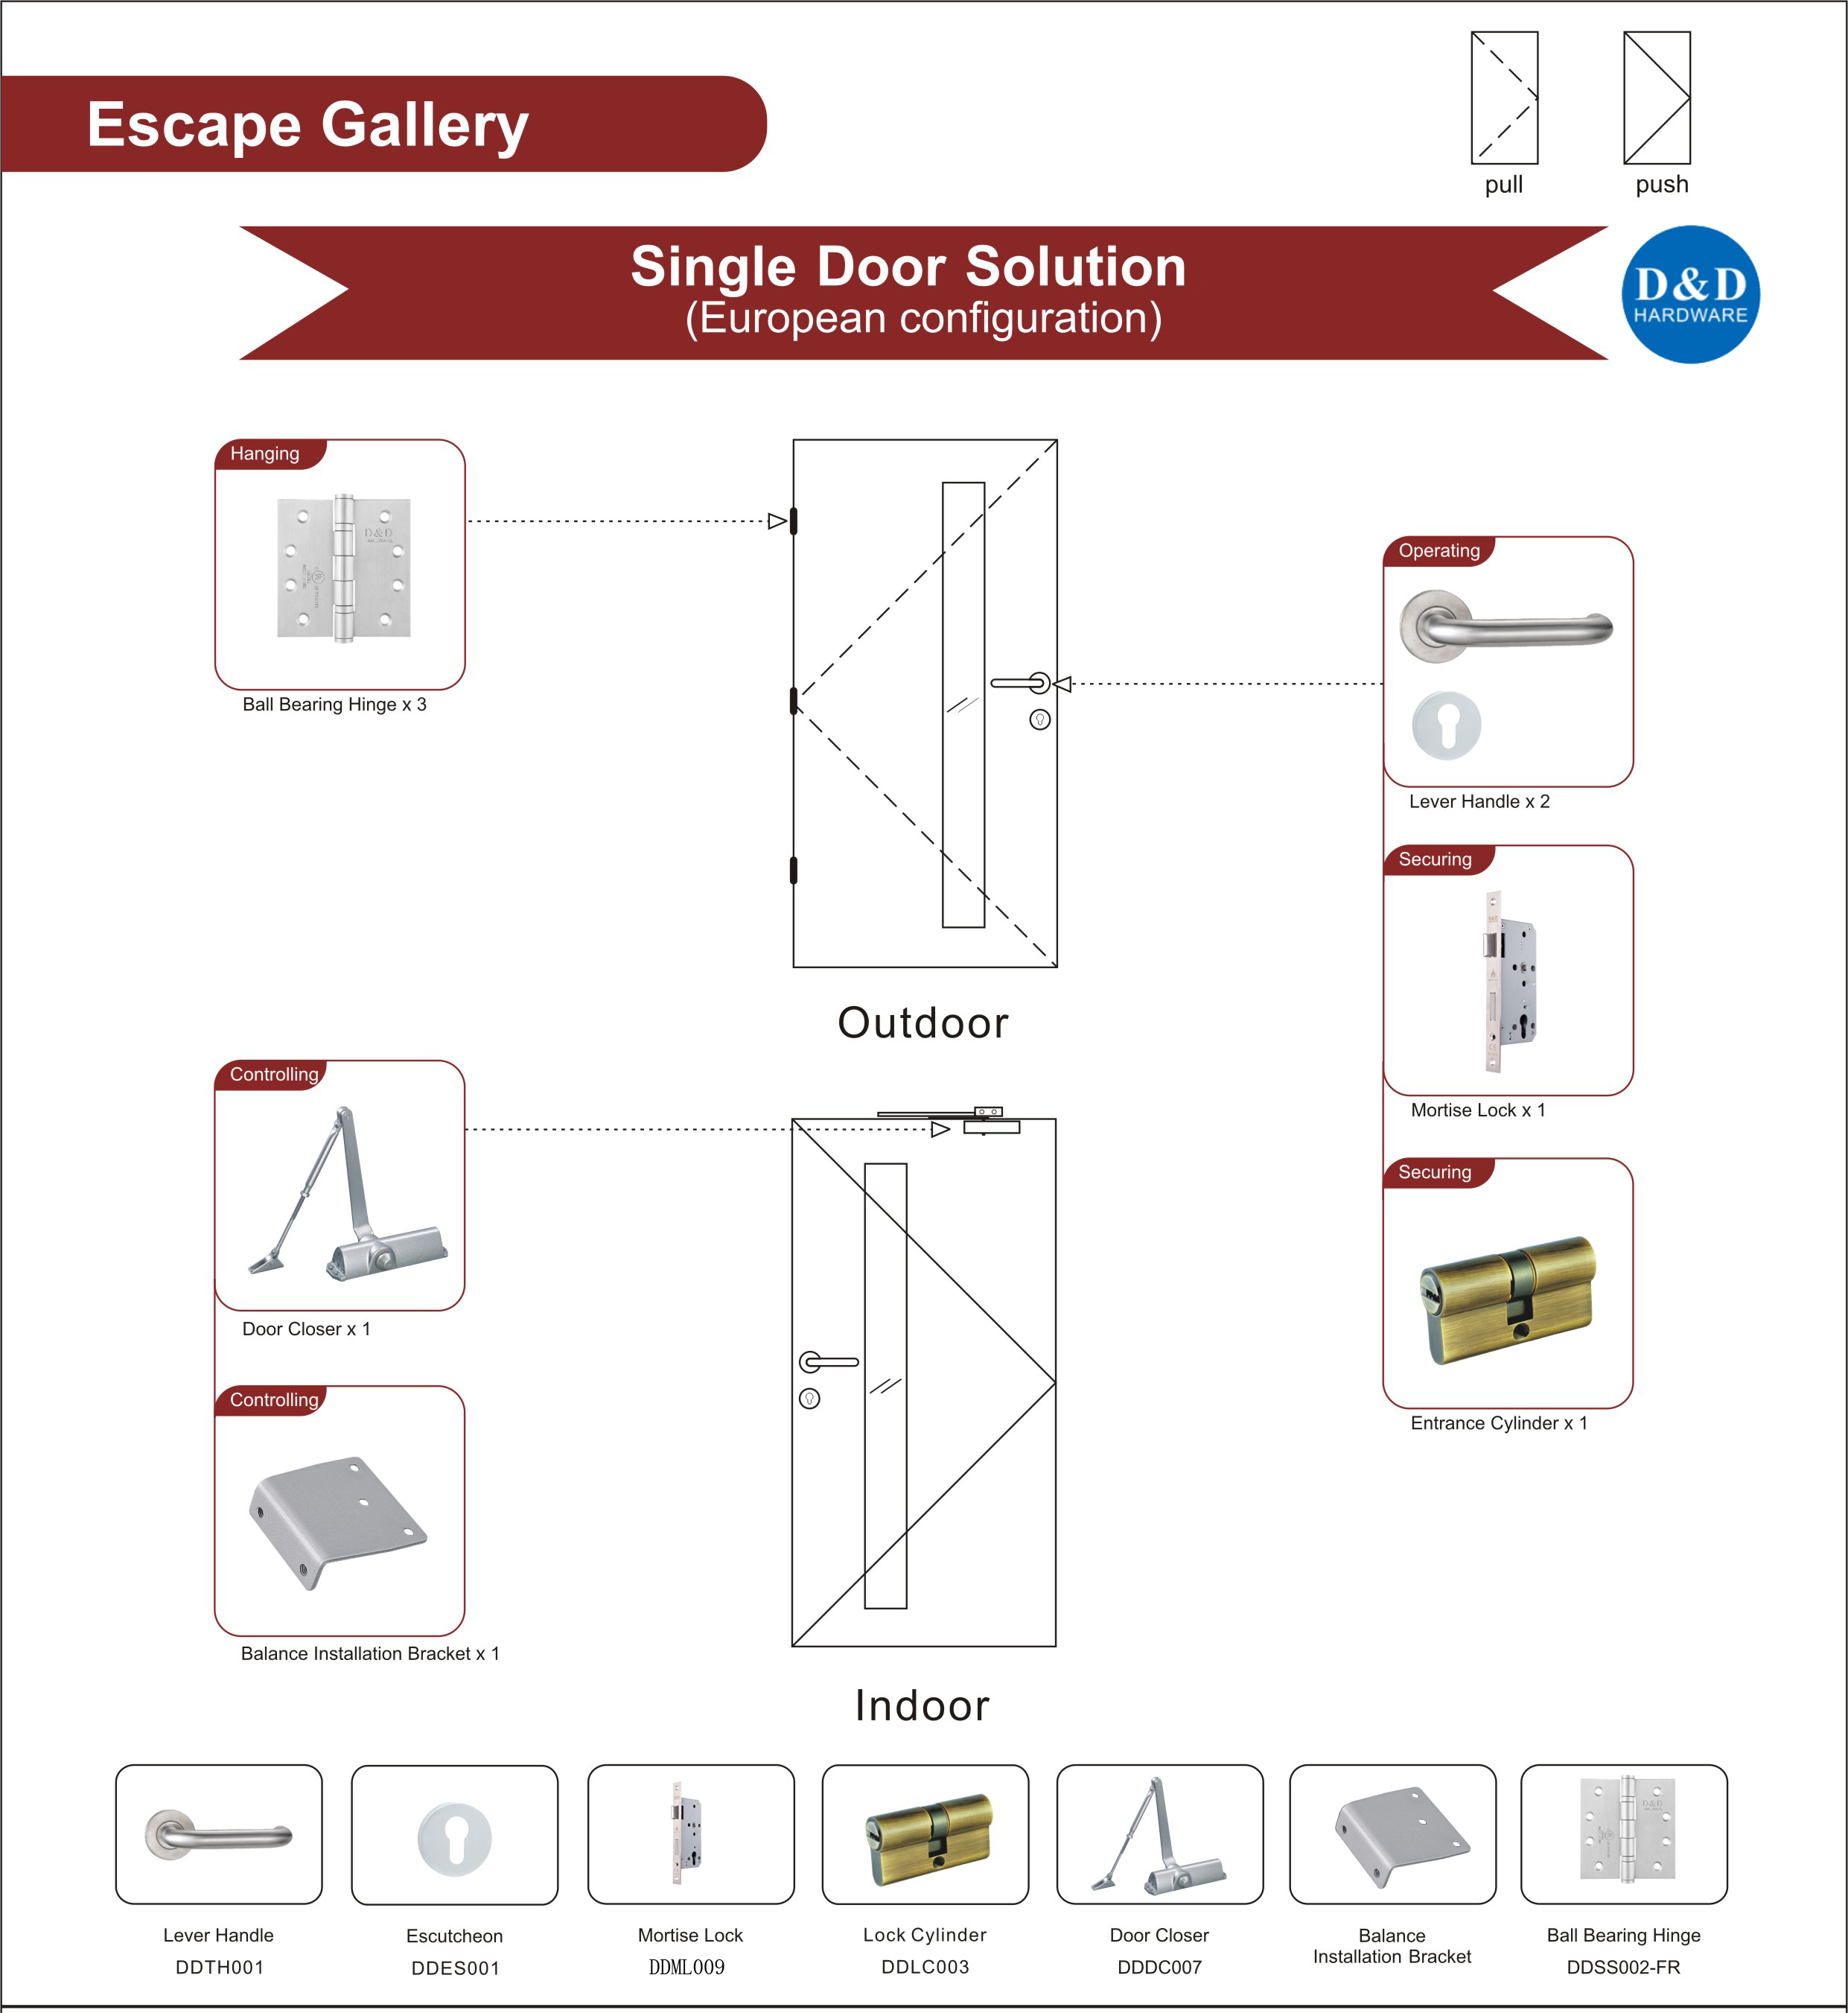 Steel Fire Rated Door Hardware for Escape Gallery Single Door